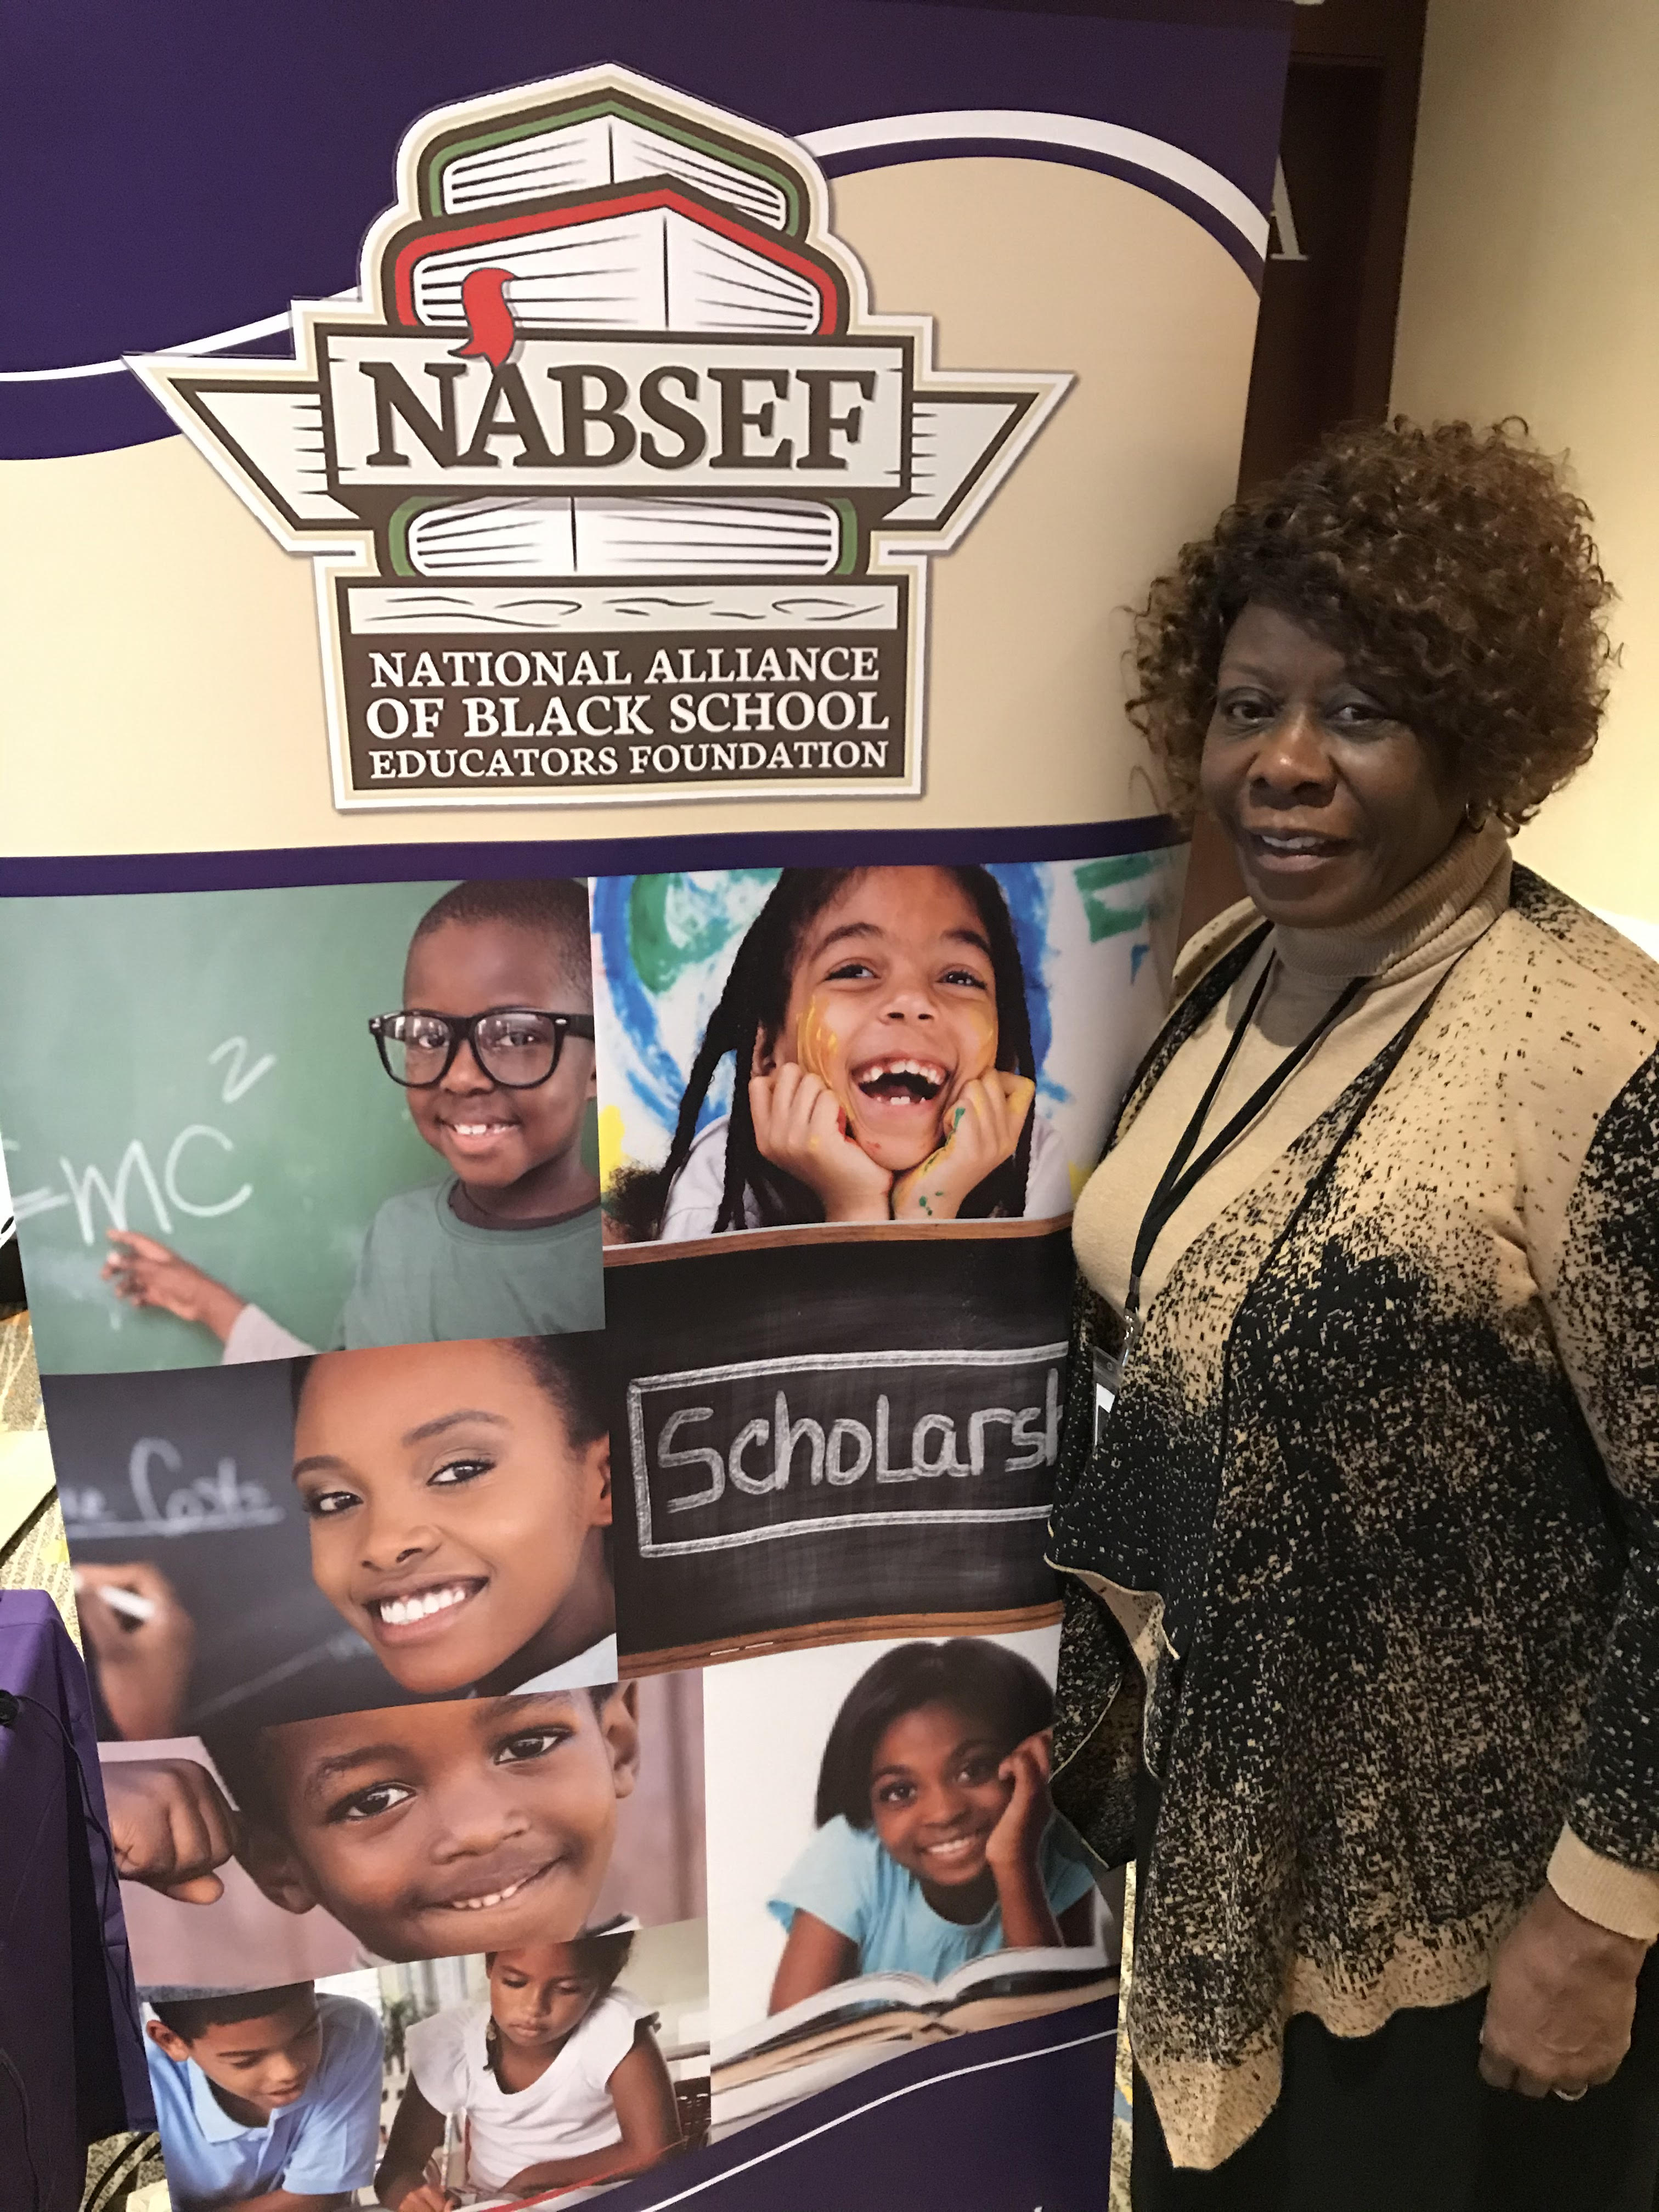 NABSE Conference Foundation Booth